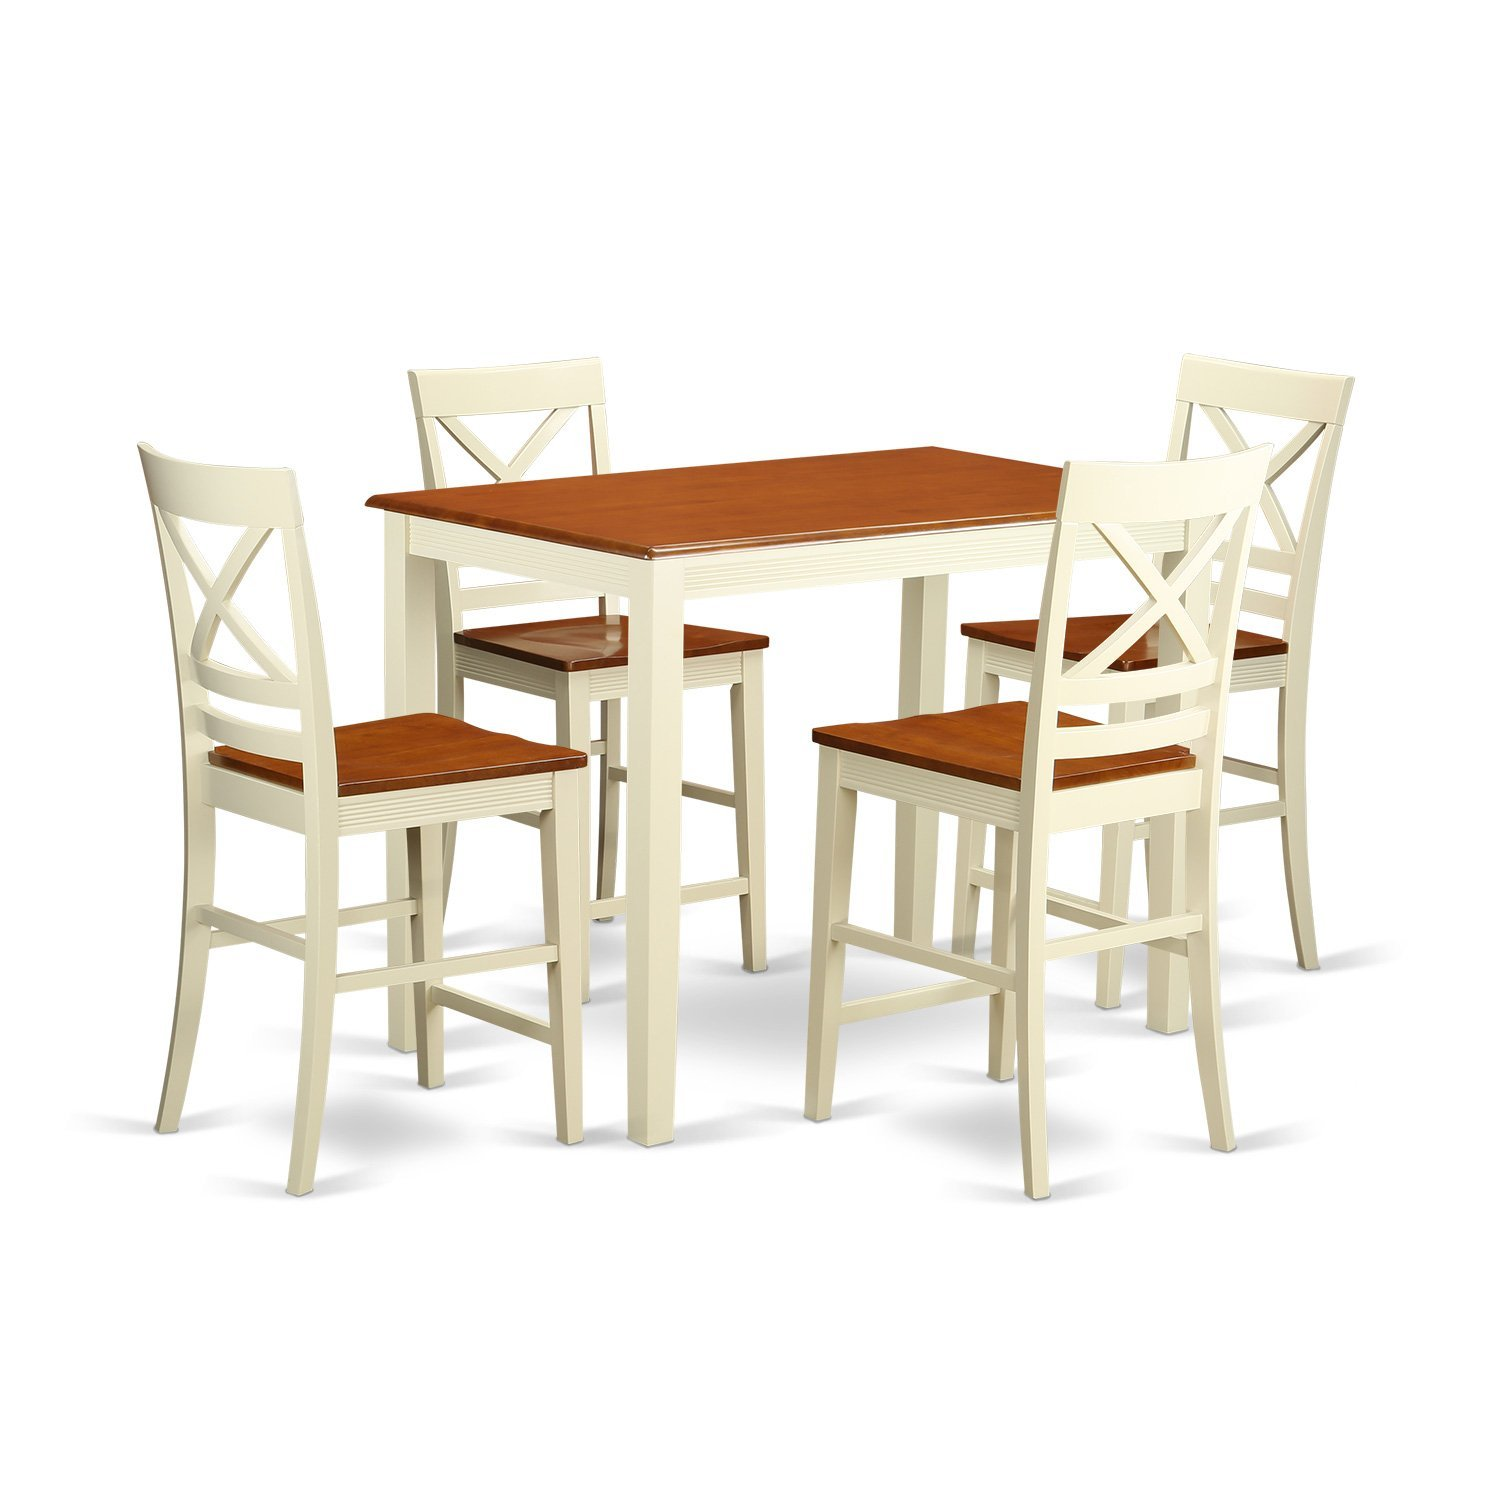 East West Furniture YAQU5-WHI-W 5 Piece Counter Height High Table and 4 Kitchen Chairs Set